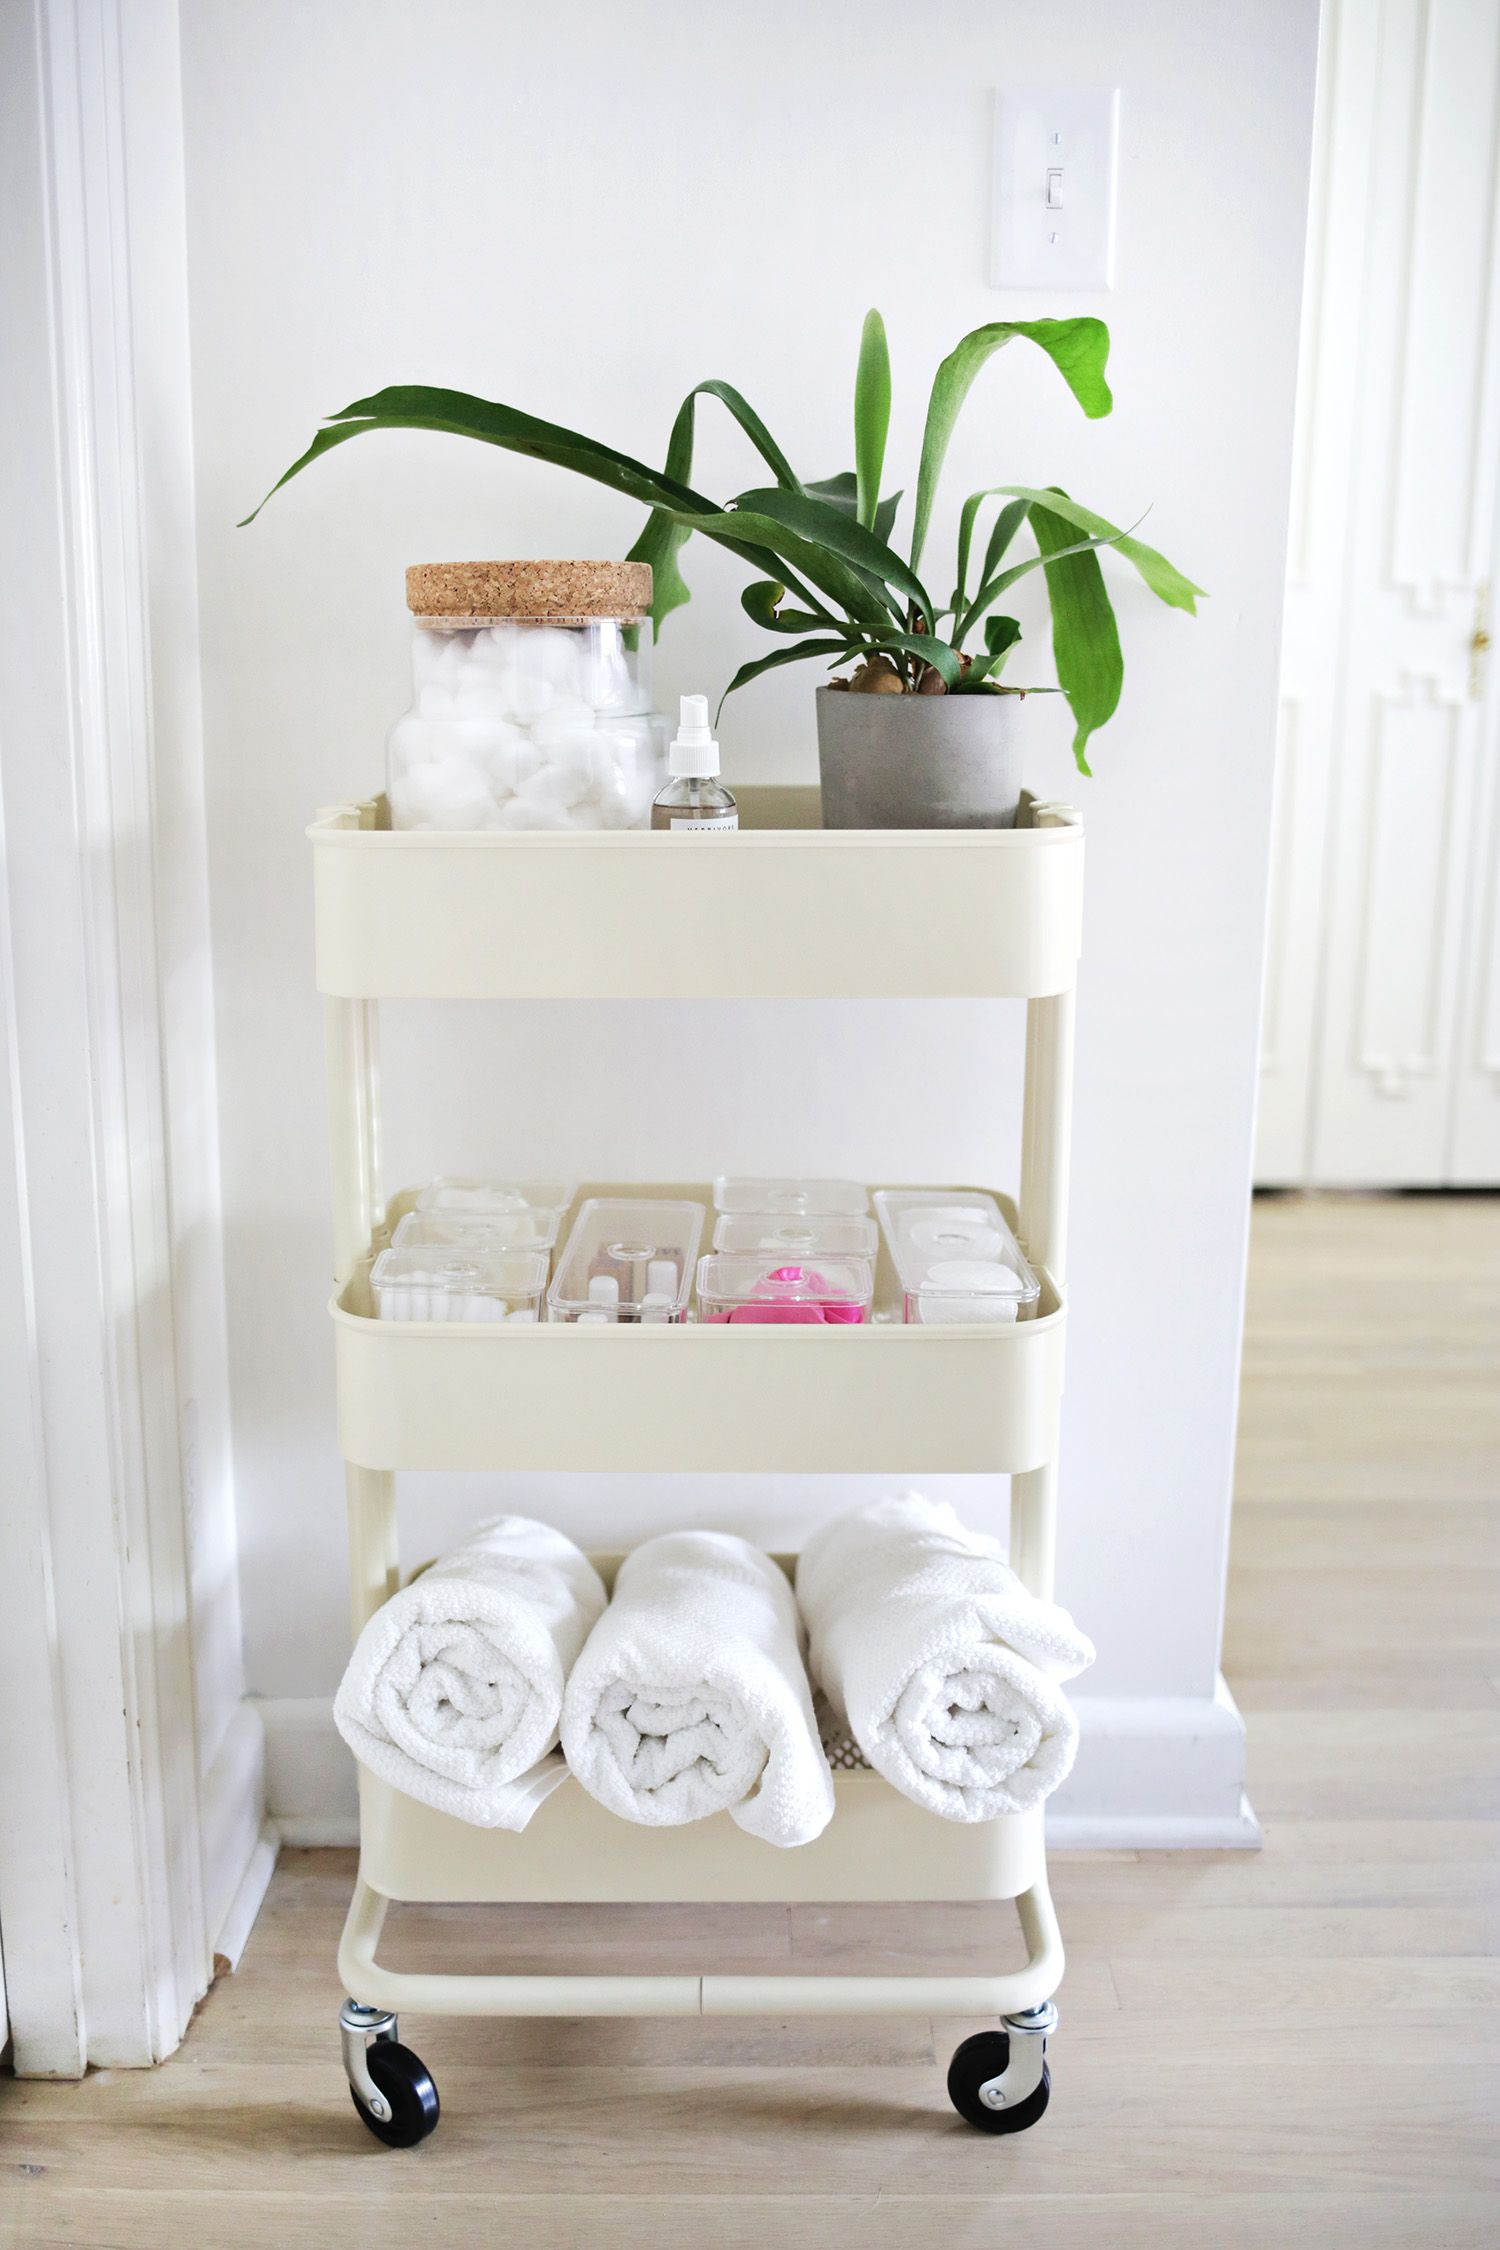 17 Easy Bathroom Organizing Ideas Pinterest Organization And Storage